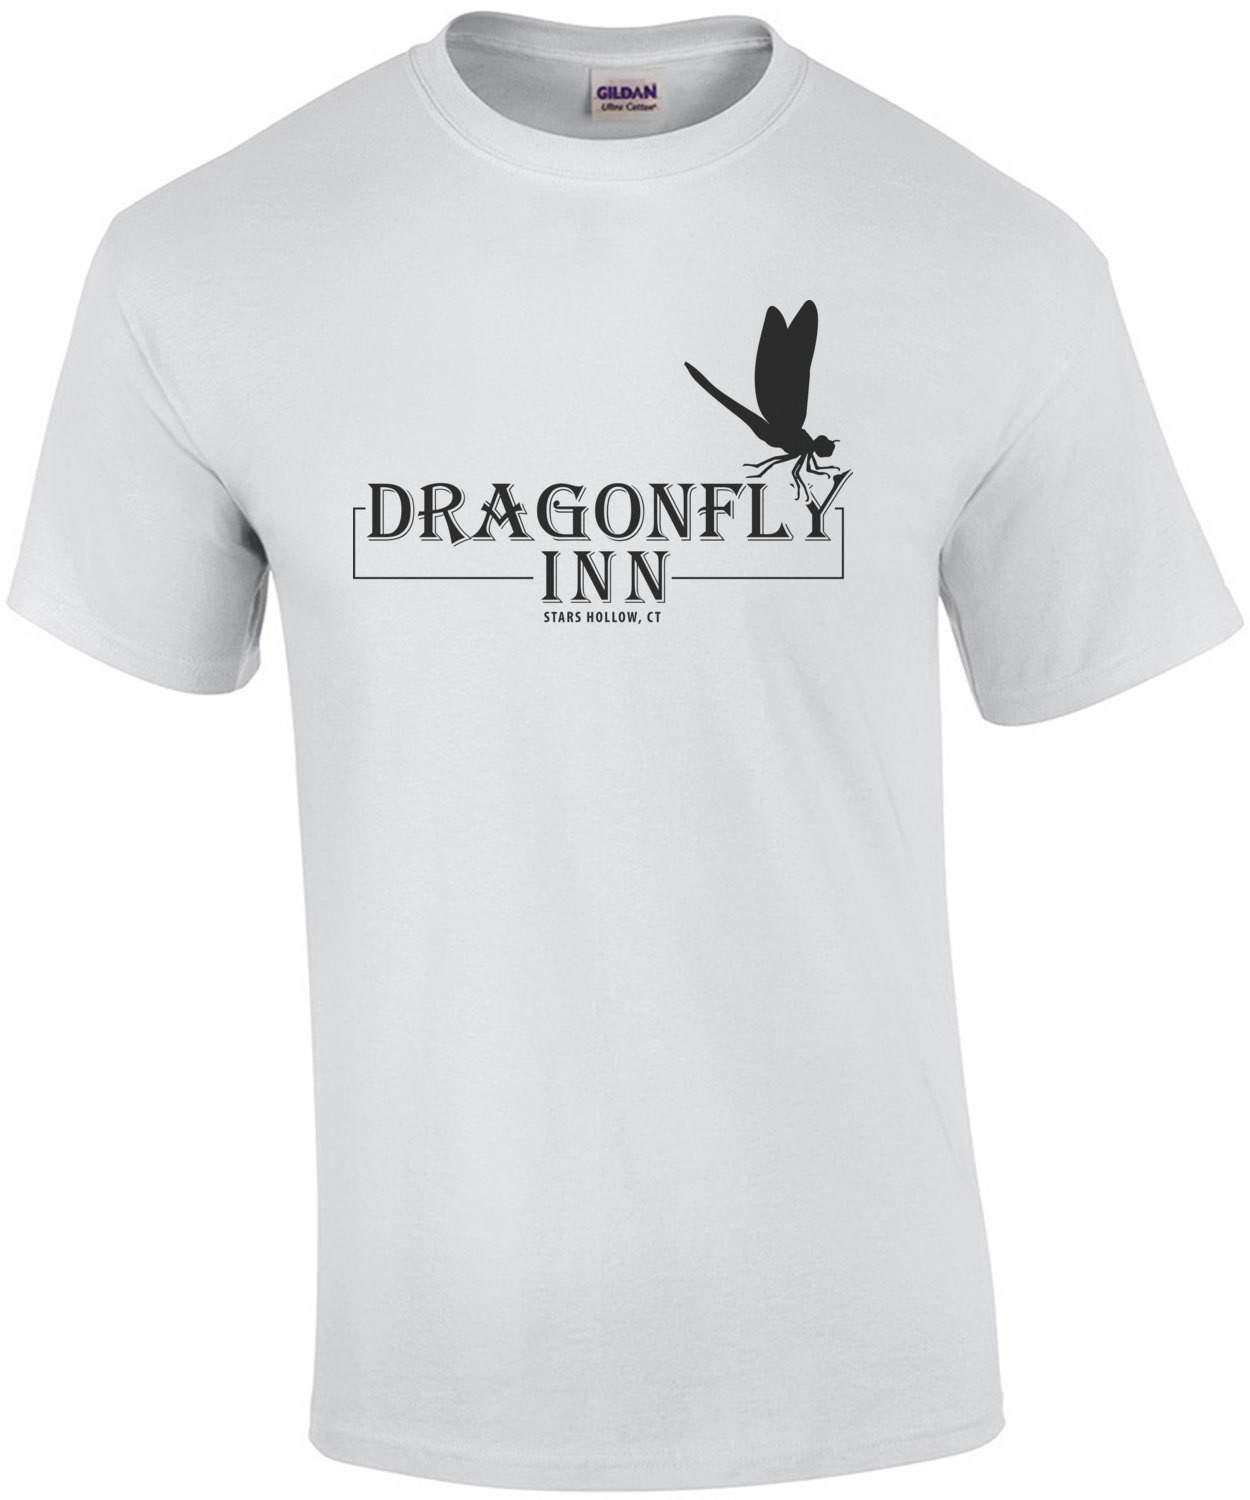 Dragonfly inn - stars hallow, CT. Gilmore Girls T-Shirt